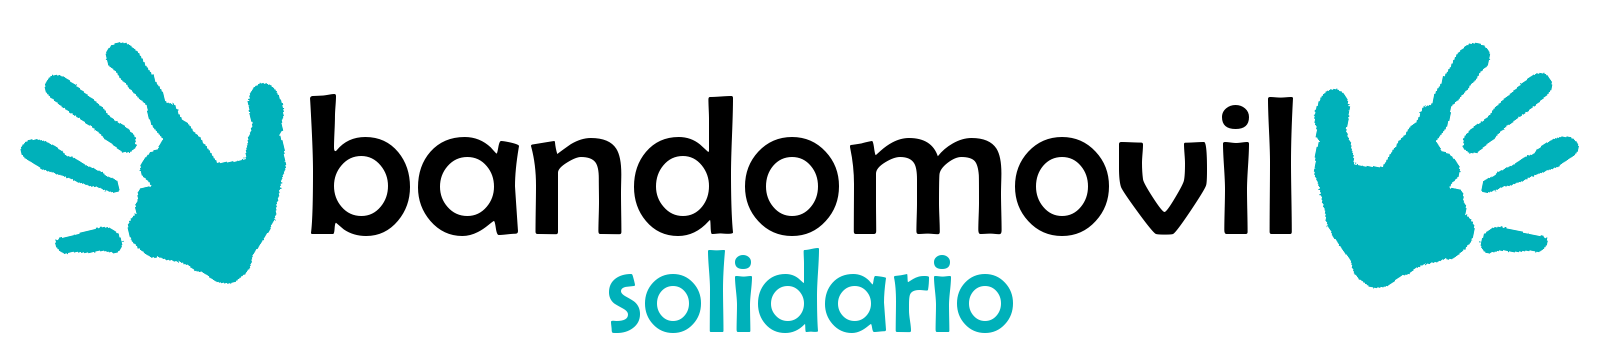 Bandomovil Solidario